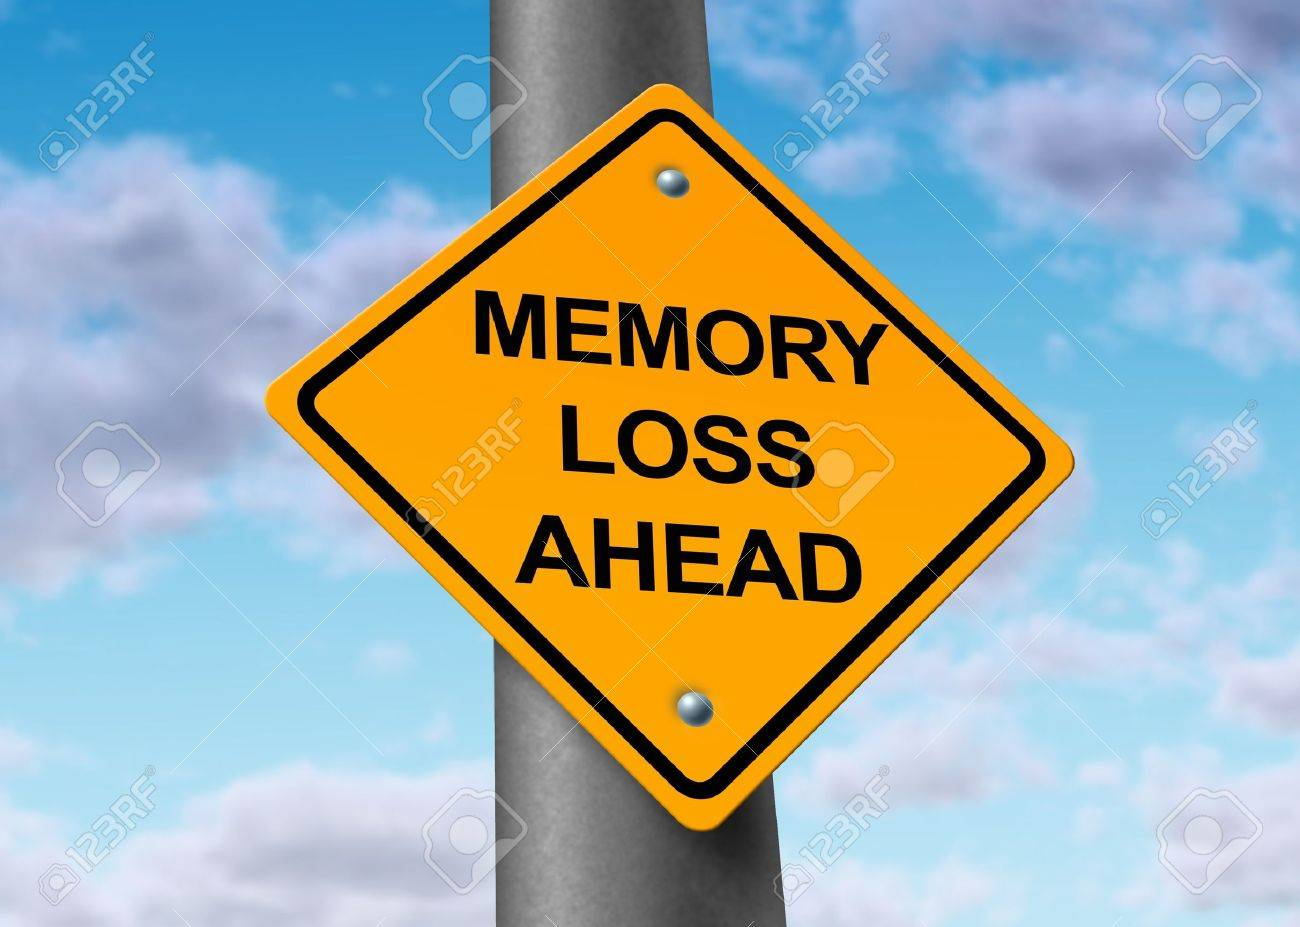 memory loss alzheimer's ahead road street sign Stock Photo - 11410875